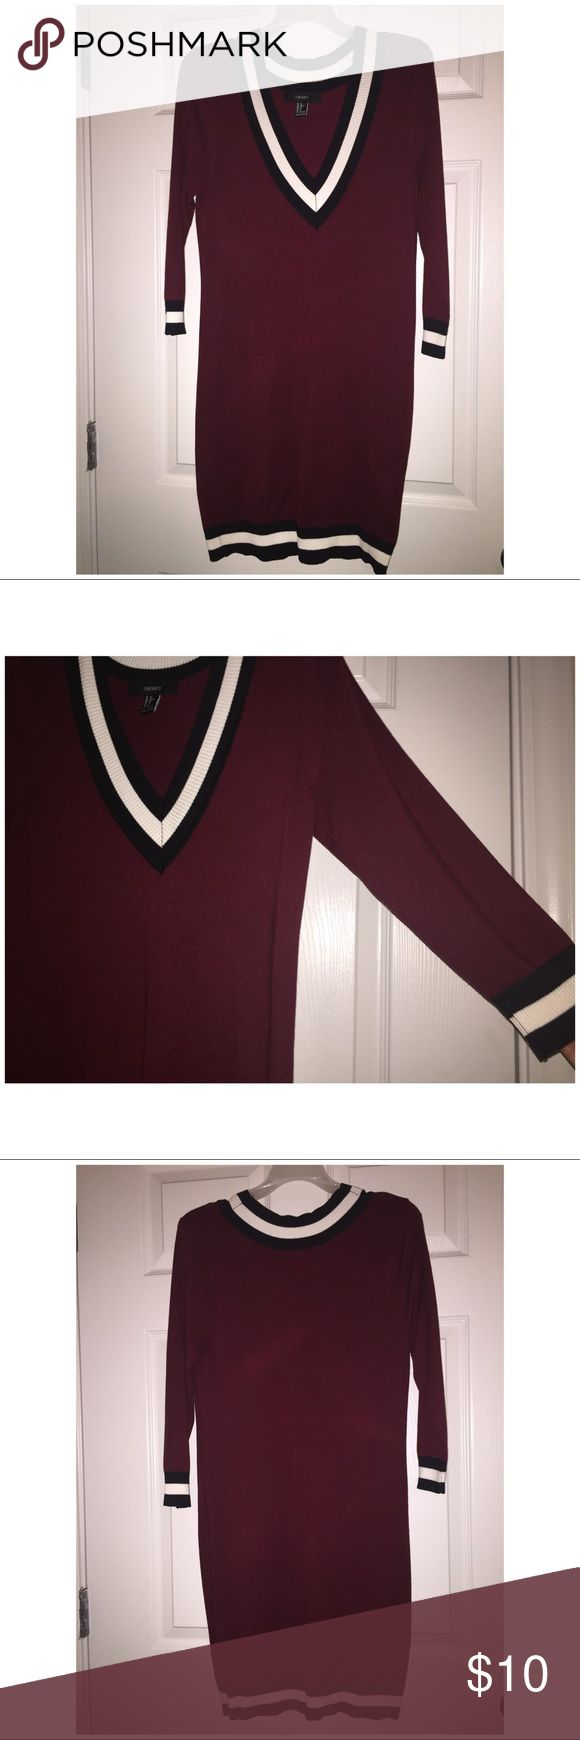 Long Sleeve Sweater Dress Burgundy sweater dress with black/white trimming. Great Condition! Forever 21 Dresses Mini